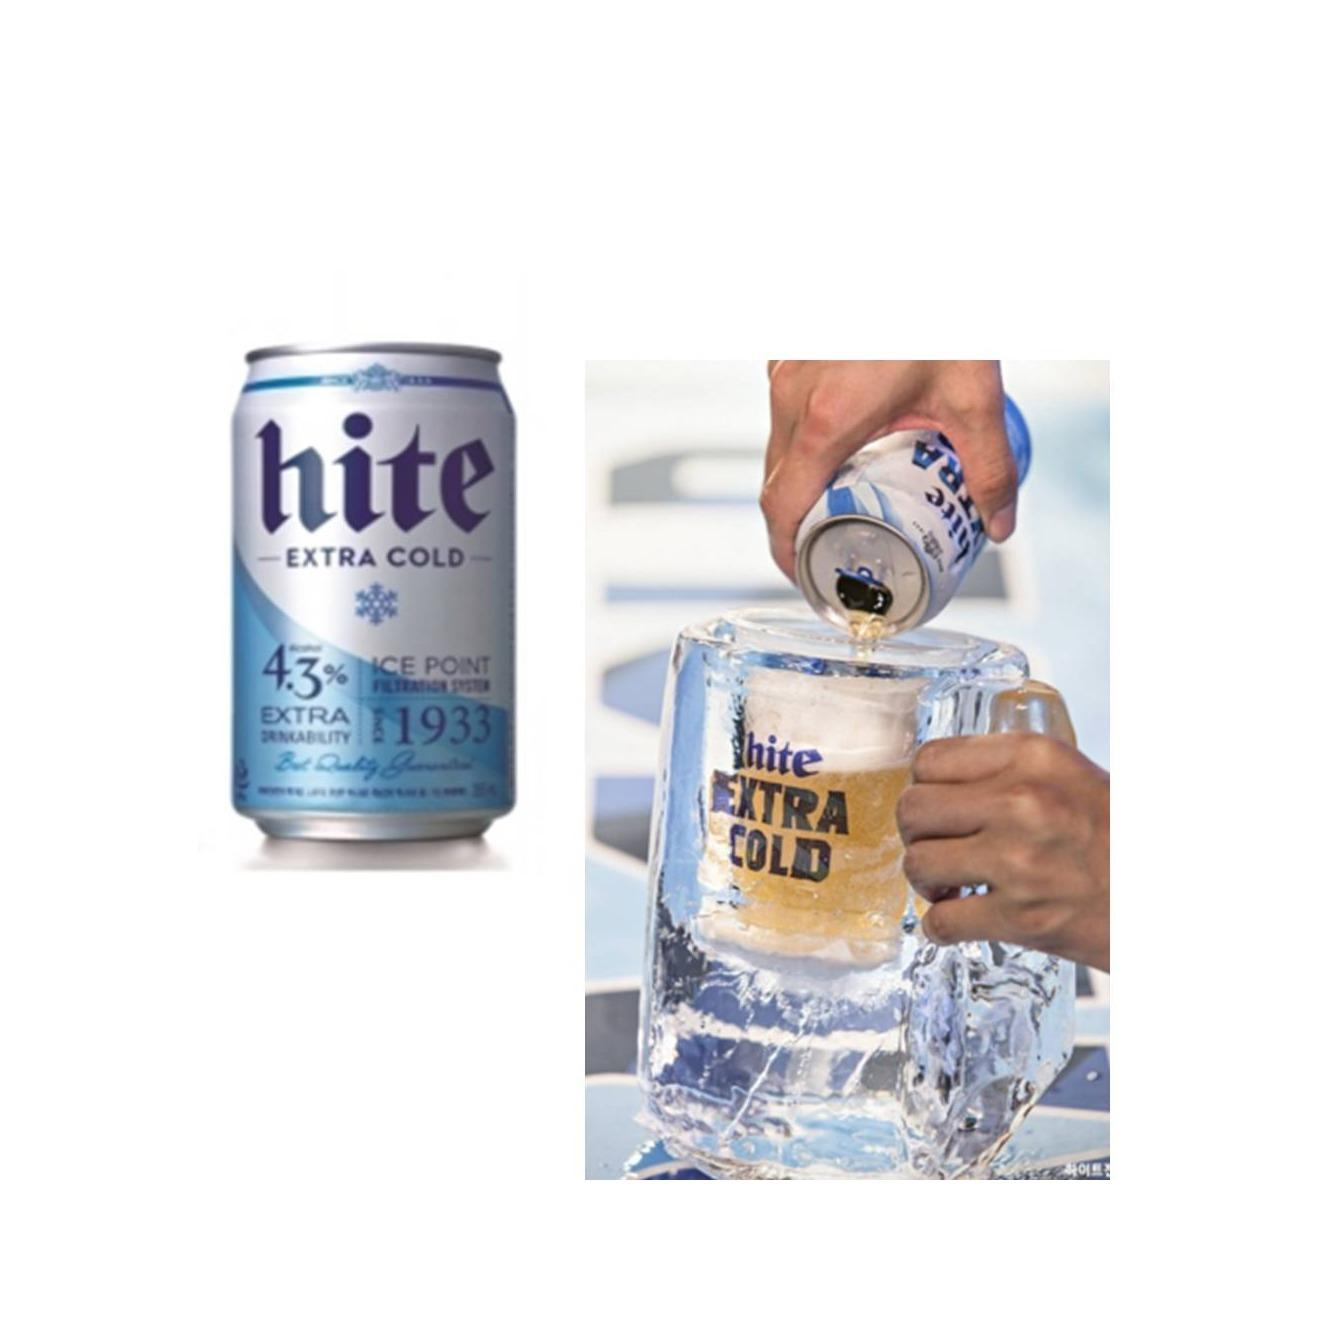 Hite Extra Cold Korea Beer 355ml X 24 Cans (oct 2019) By Qqmart.